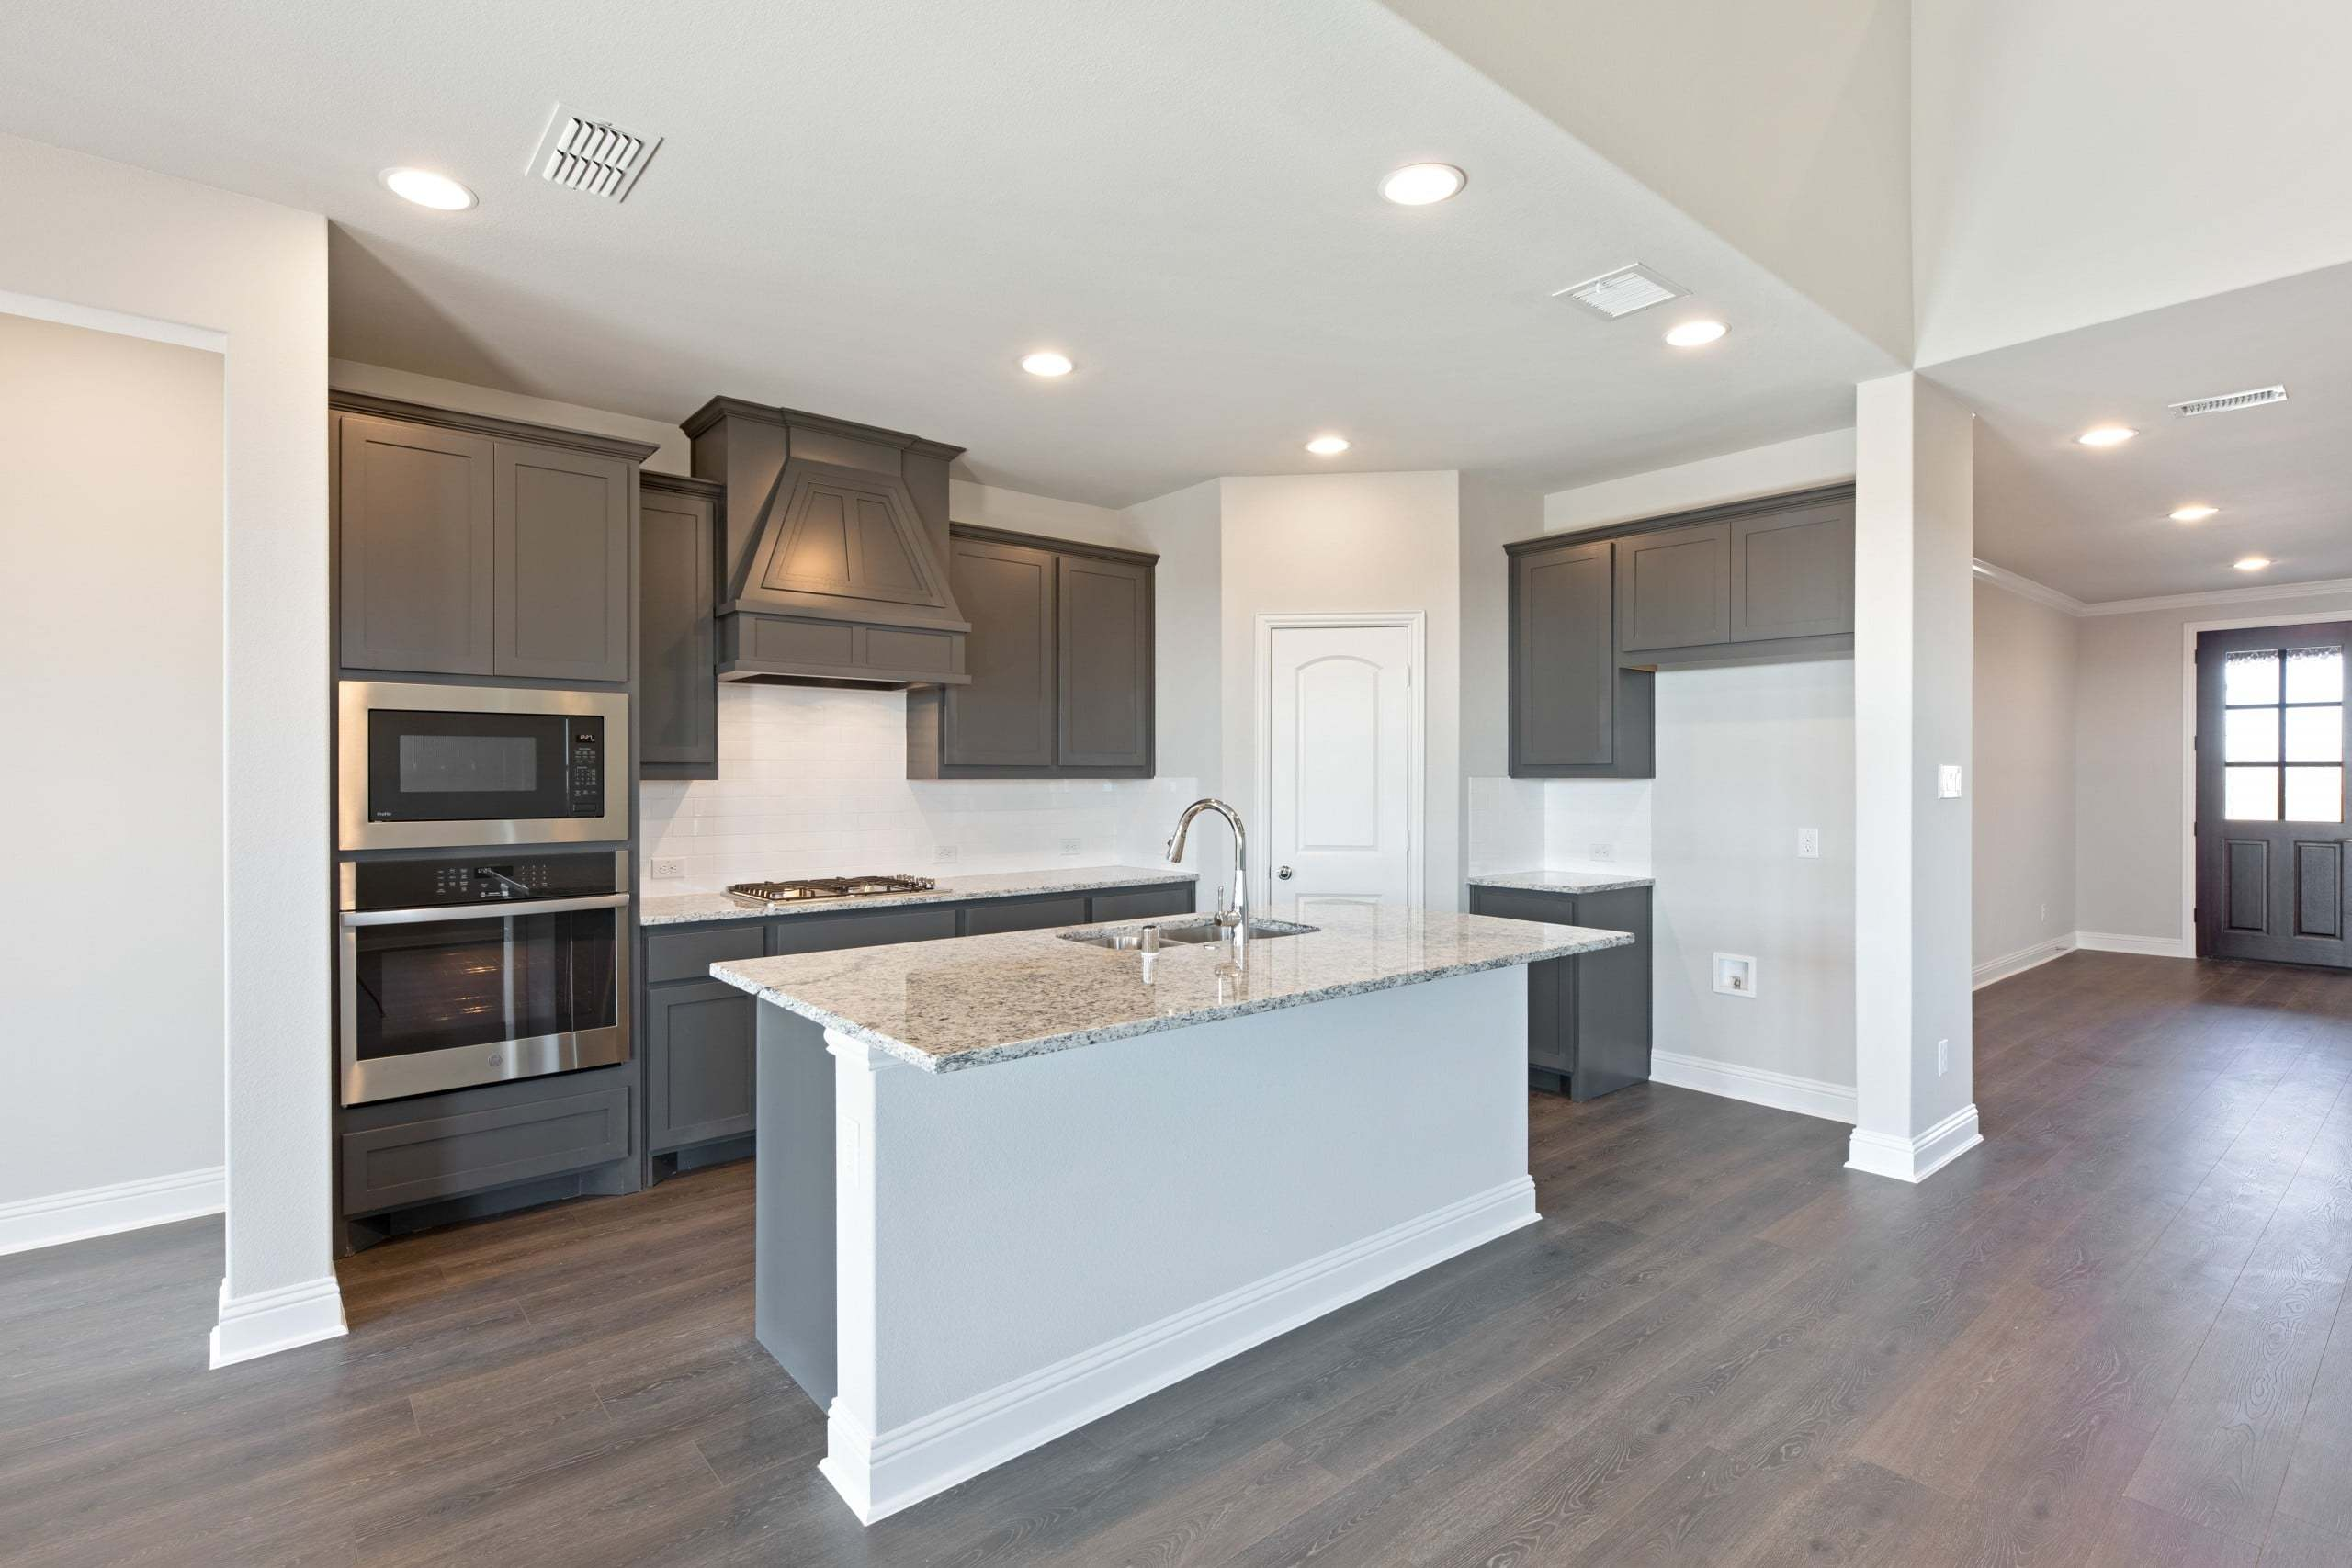 Kitchen featured in the Sabine By UnionMain Homes in Dallas, TX